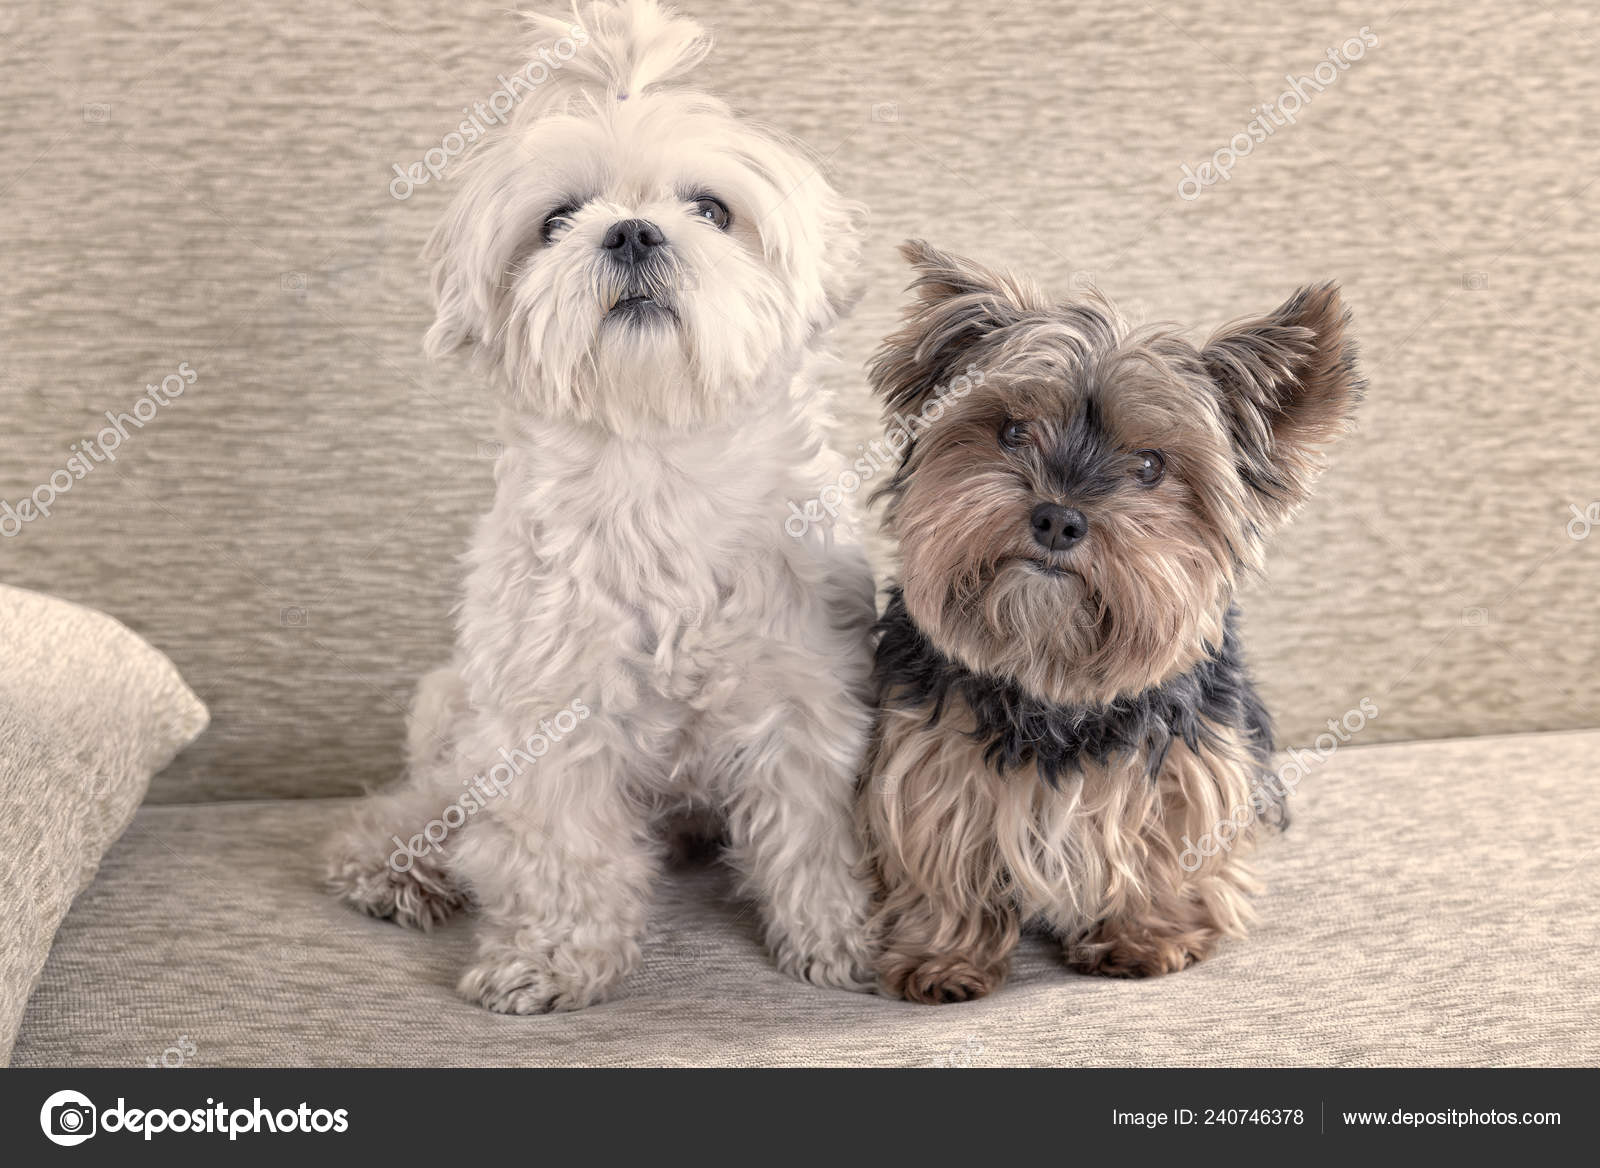 Maltese Puppy Brown And White Two Cute Dogs White Maltese Yorkshire Terrier Sofa Home Stock Photo C Amaviael 240746378